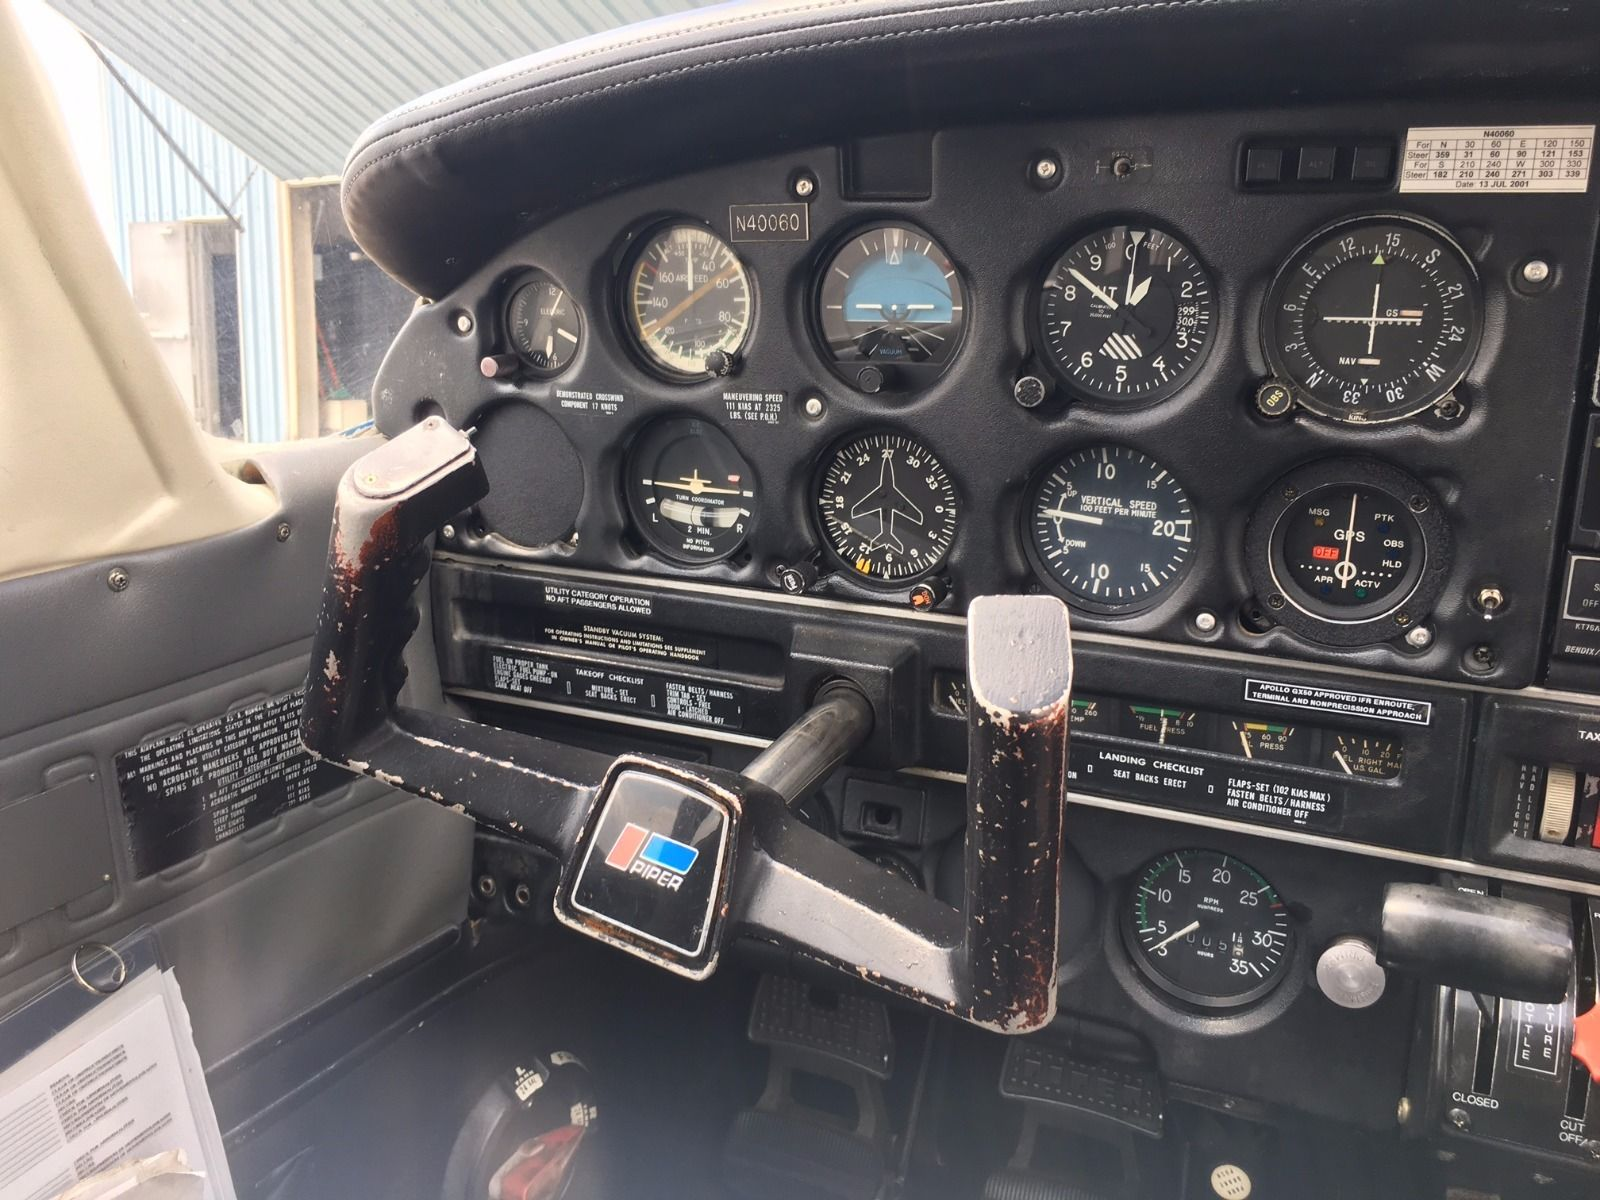 Recently serviced 1977 Piper PA-28-161 aircraft